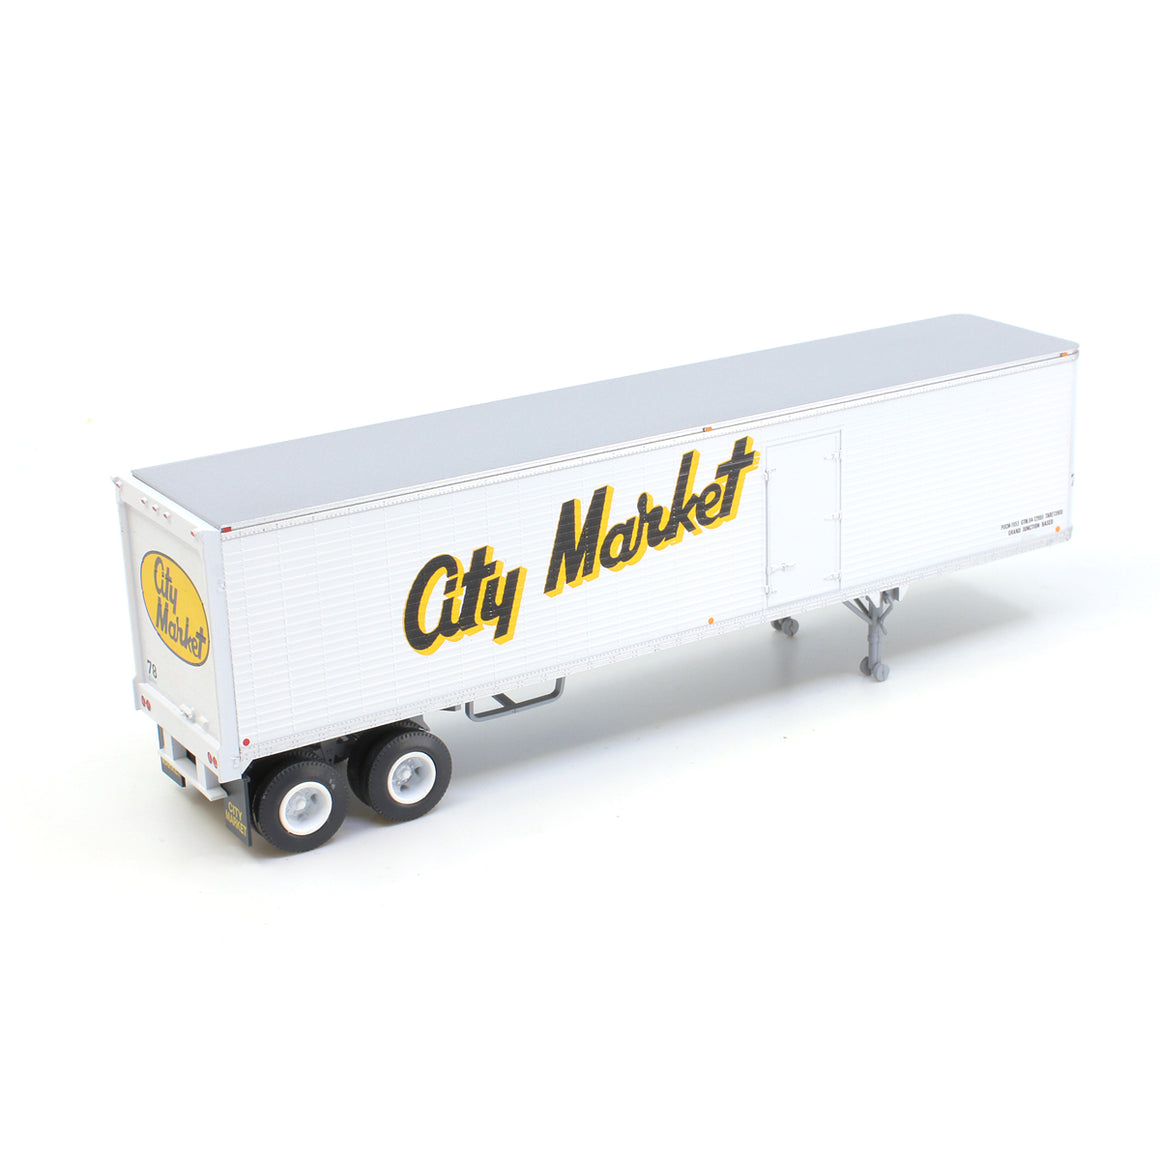 HO Scale: 40' Corrugated Semi Trailer - City Market